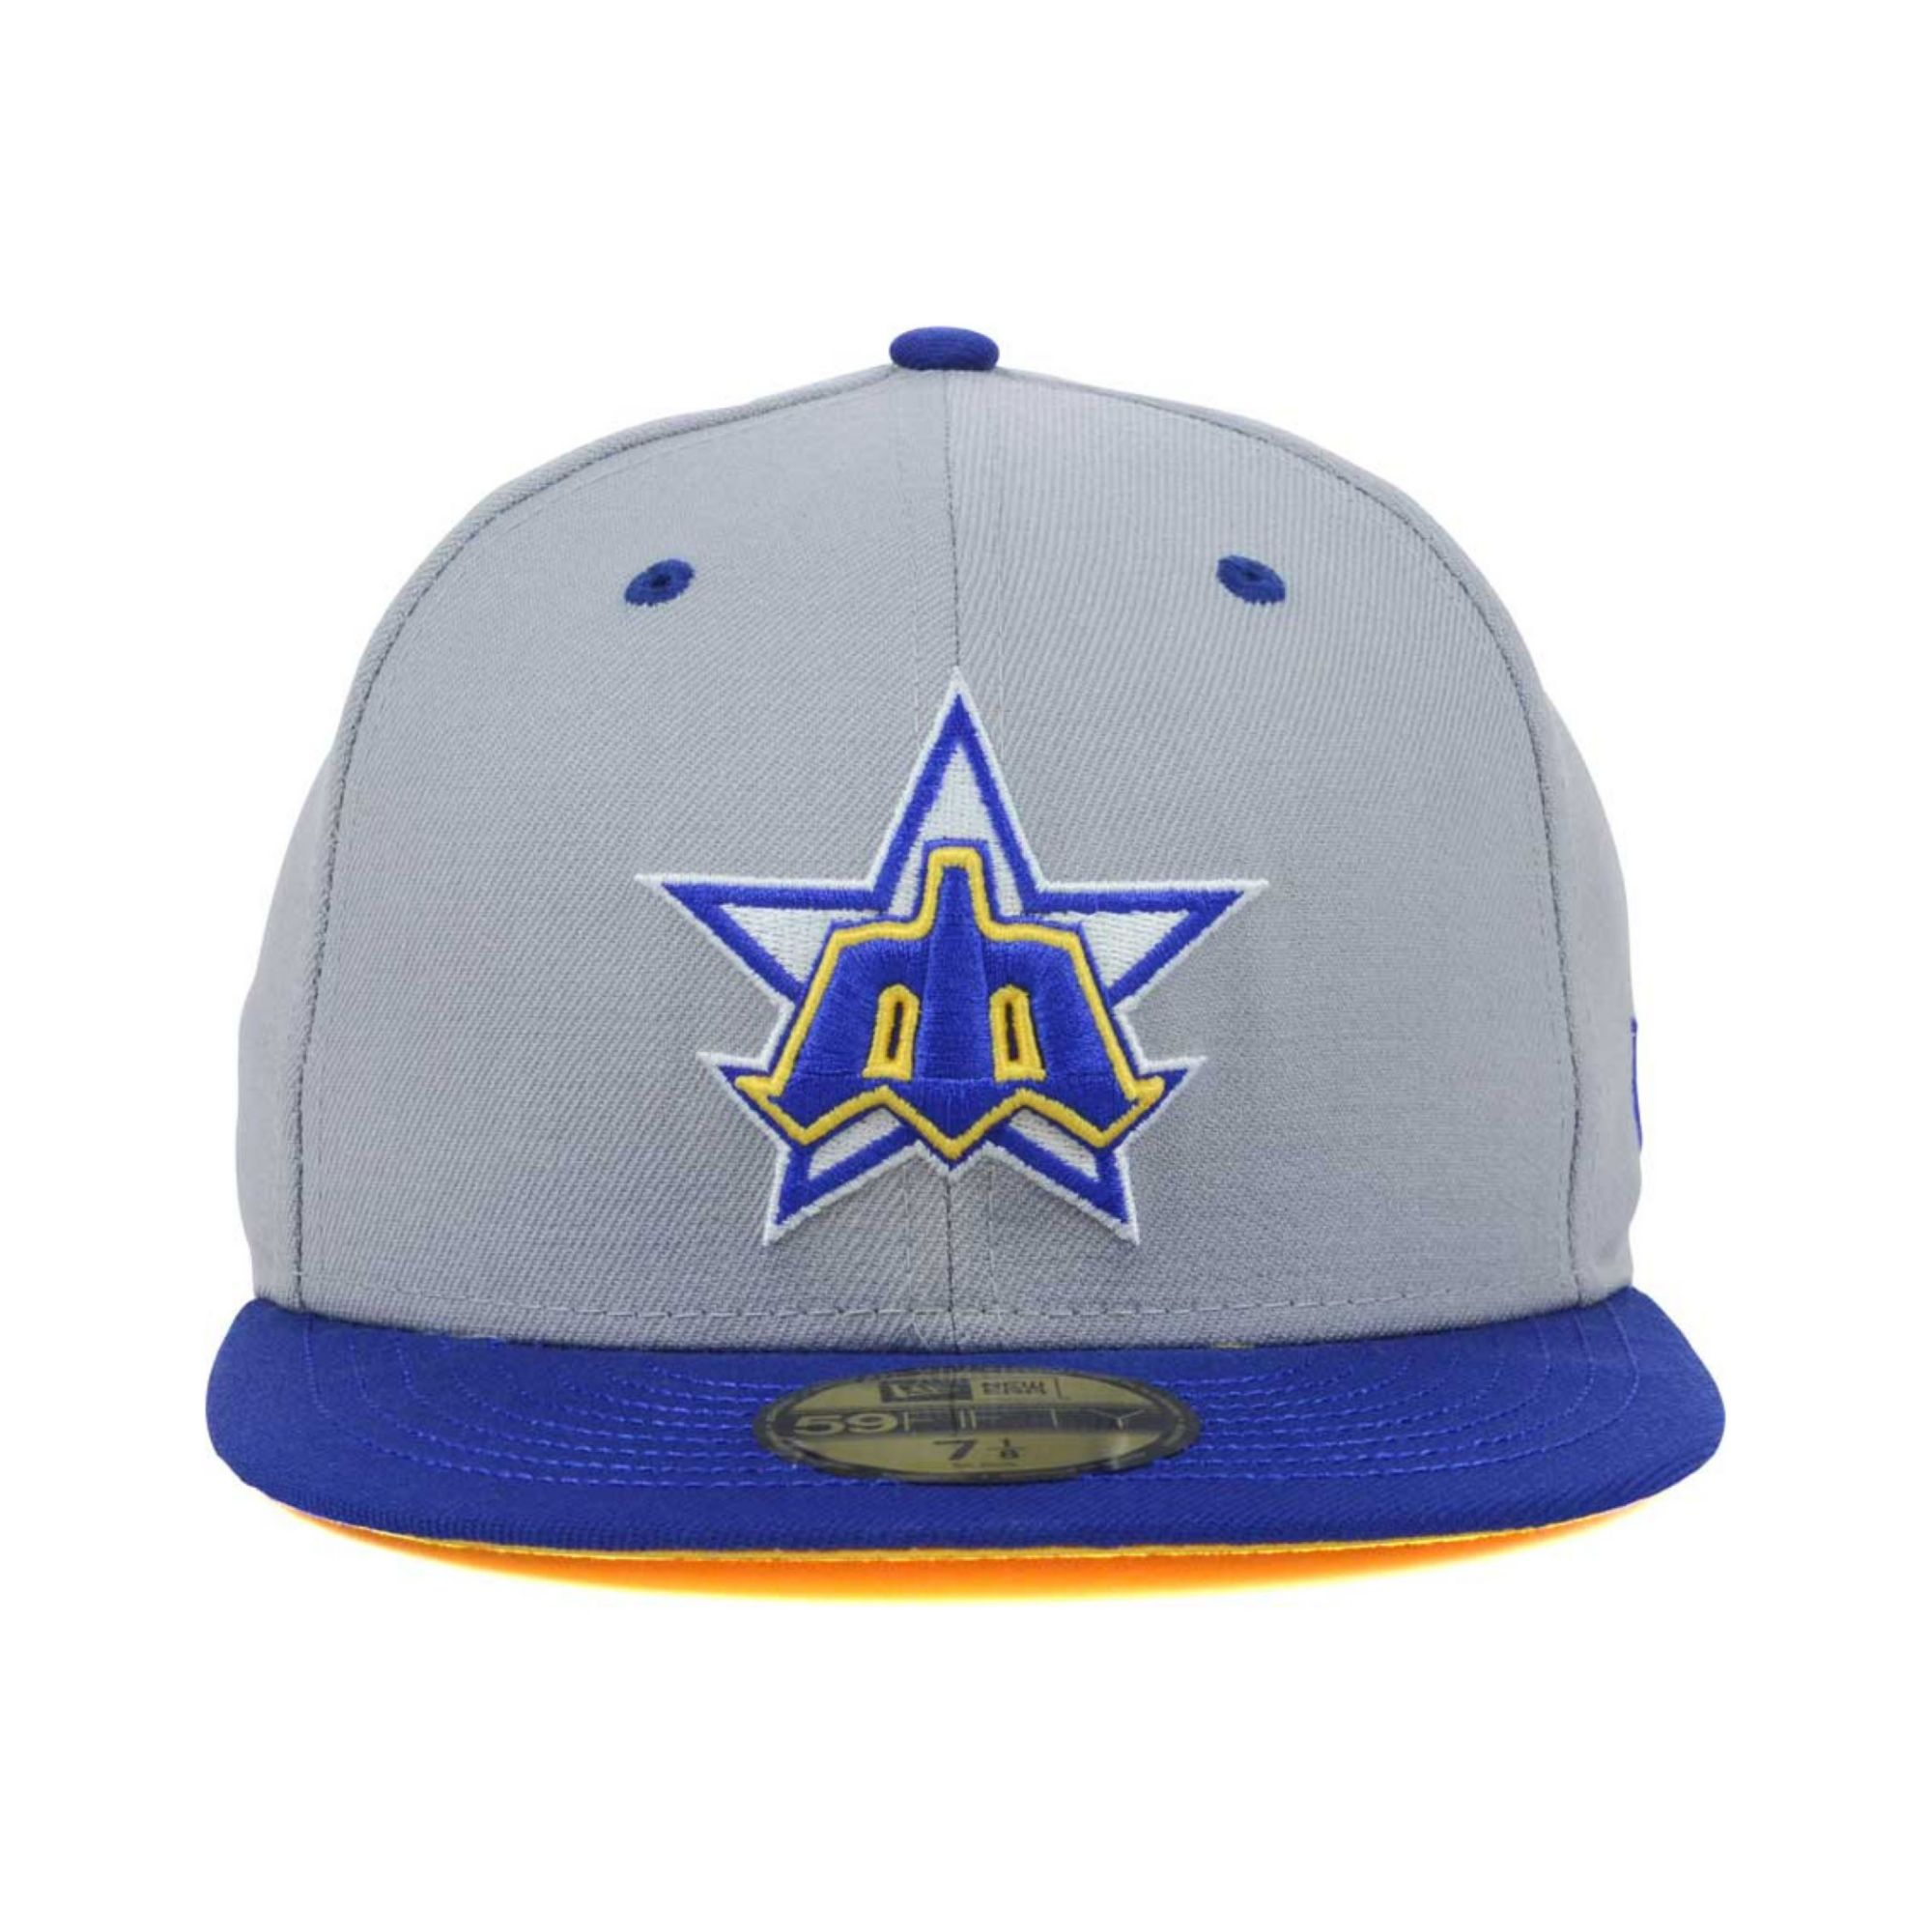 new concept baf95 f130f real seattle new era 20563117 mariners mlb ac on field 9 11 patch 59fifty  navy green cap 36403 28d0e  get lyst ktz seattle mariners team underform  59fifty ...